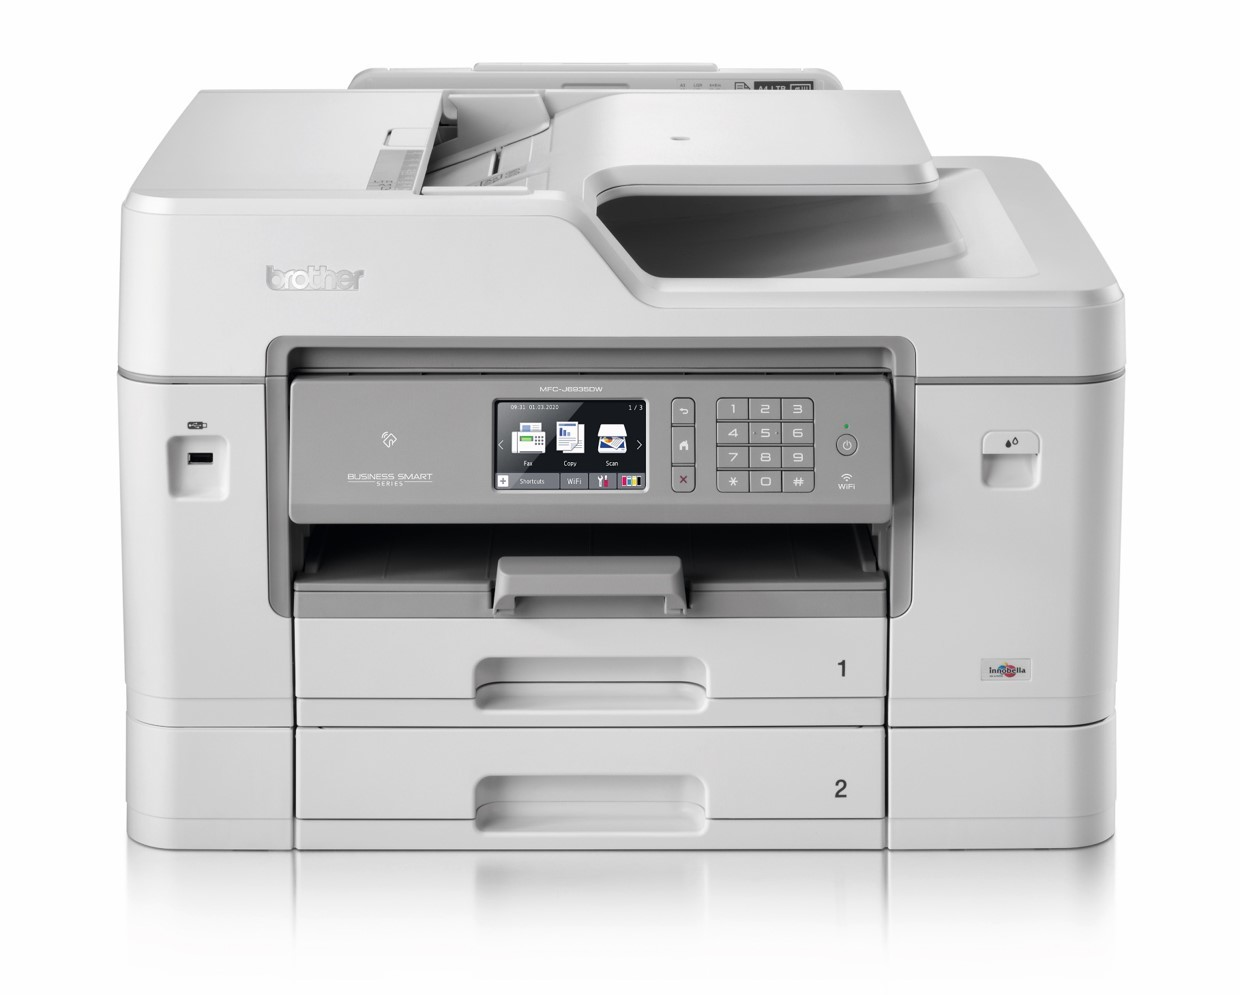 Brother MFCJ6935DW A3 Colour Inkjet All-In-One Printer image